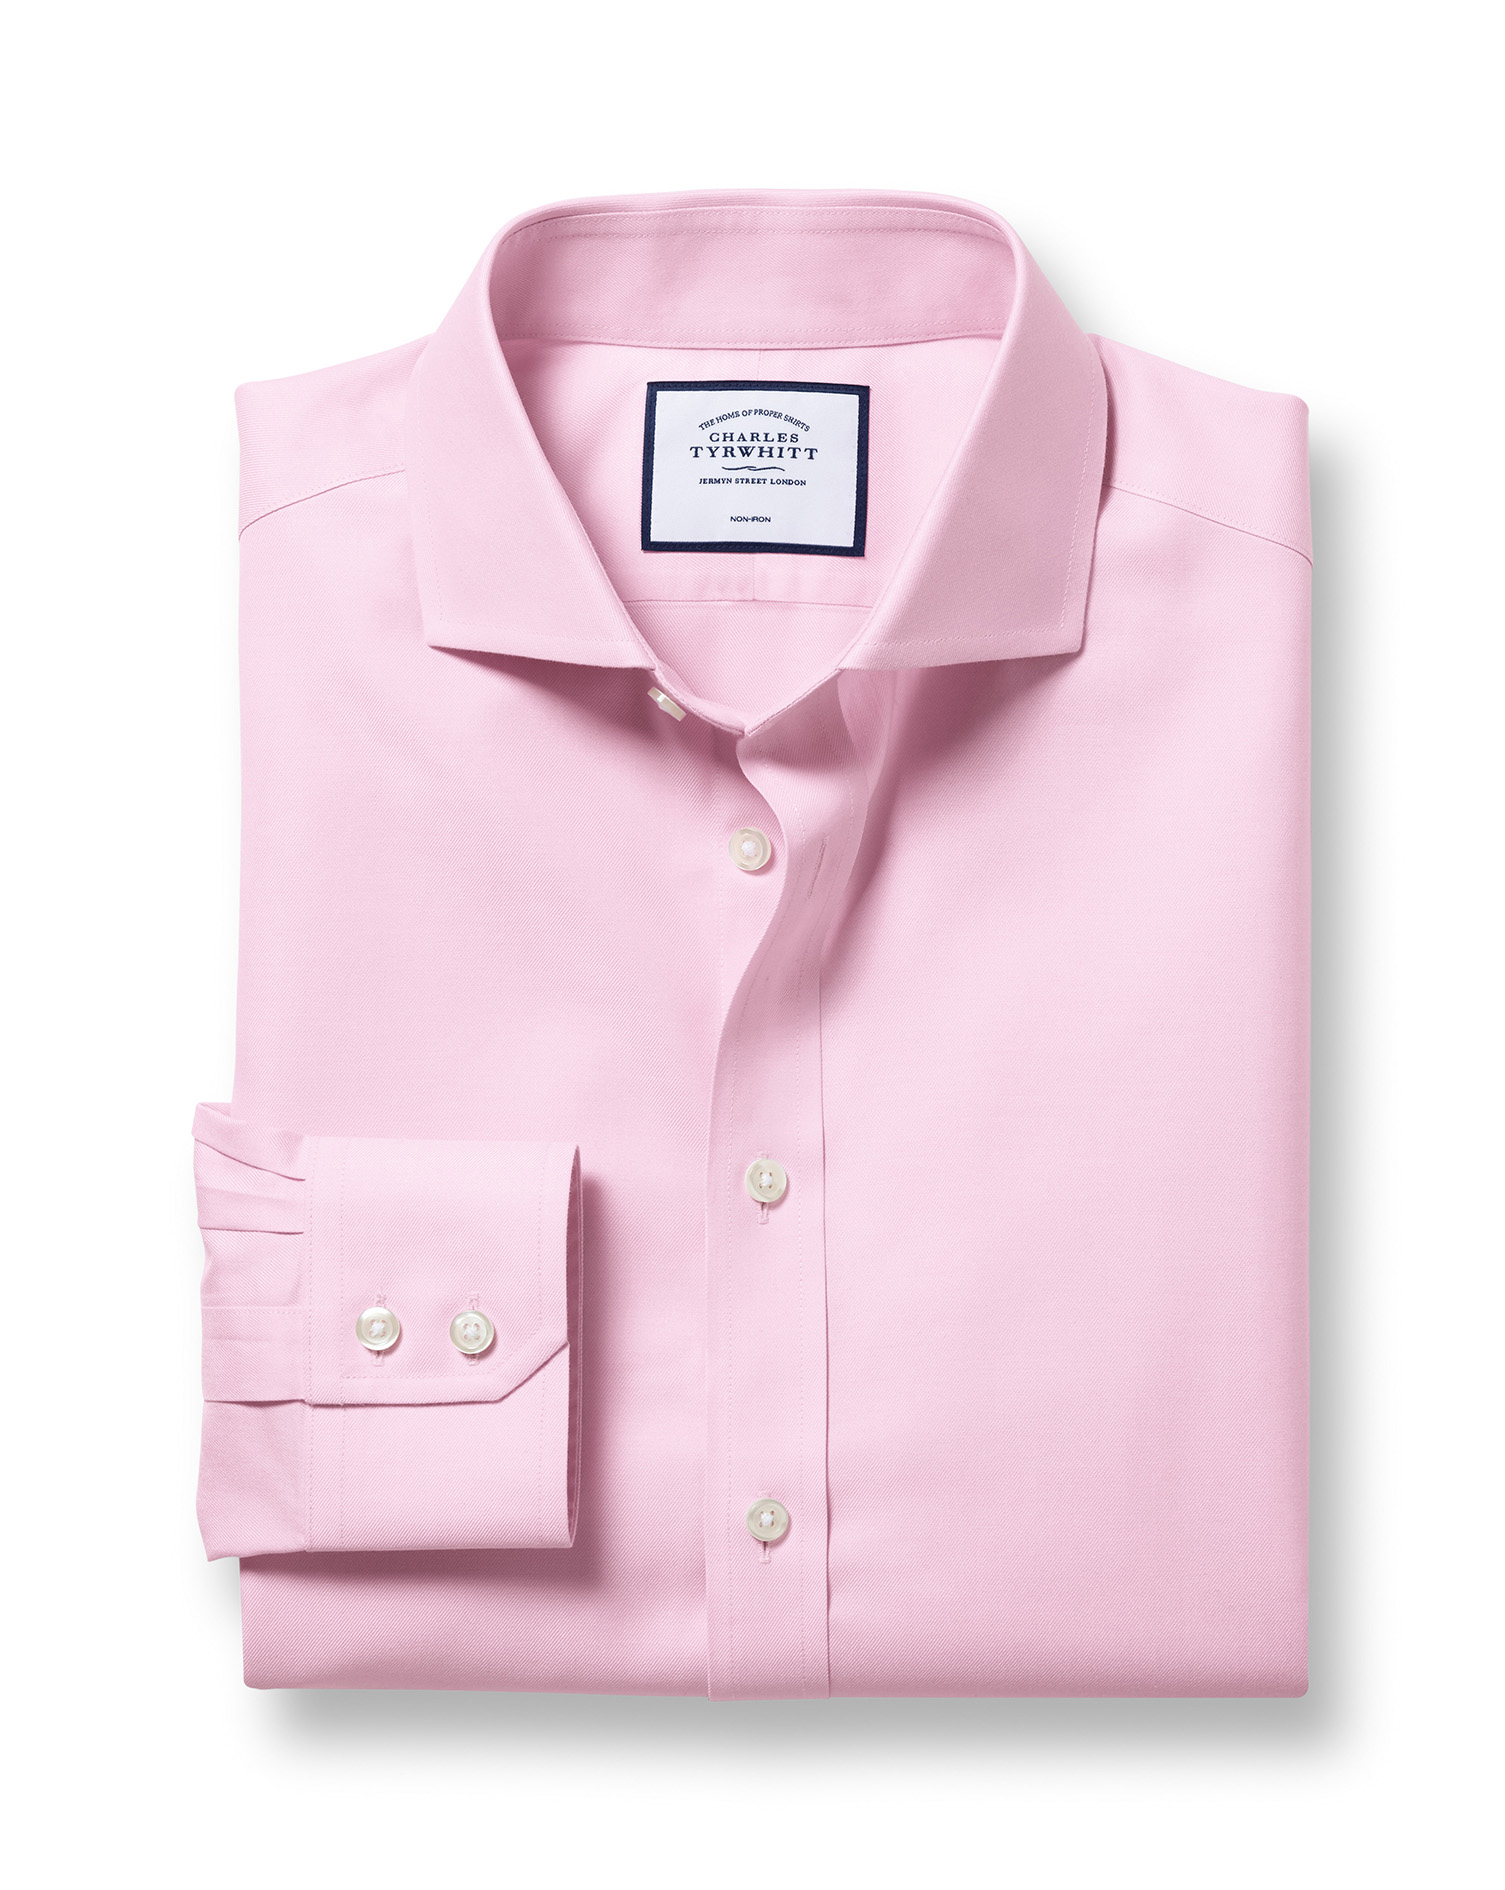 Slim Fit Cutaway Non-Iron Twill Pink Cotton Formal Shirt Double Cuff Size 16/35 by Charles Tyrwhitt